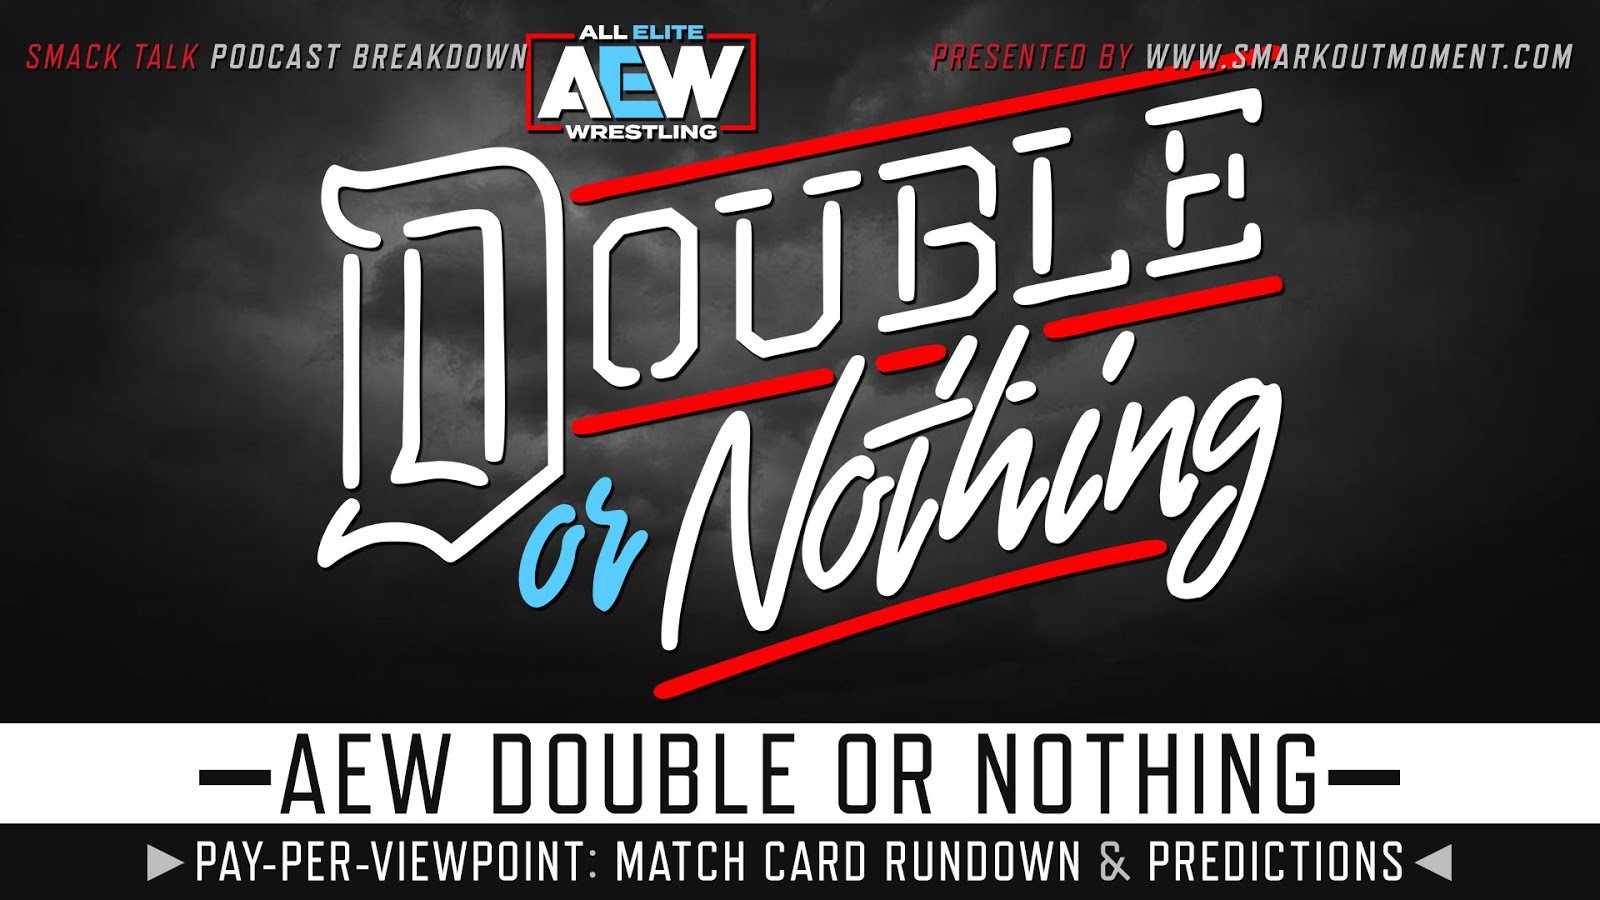 AEW Double or Nothing spoilers podcast